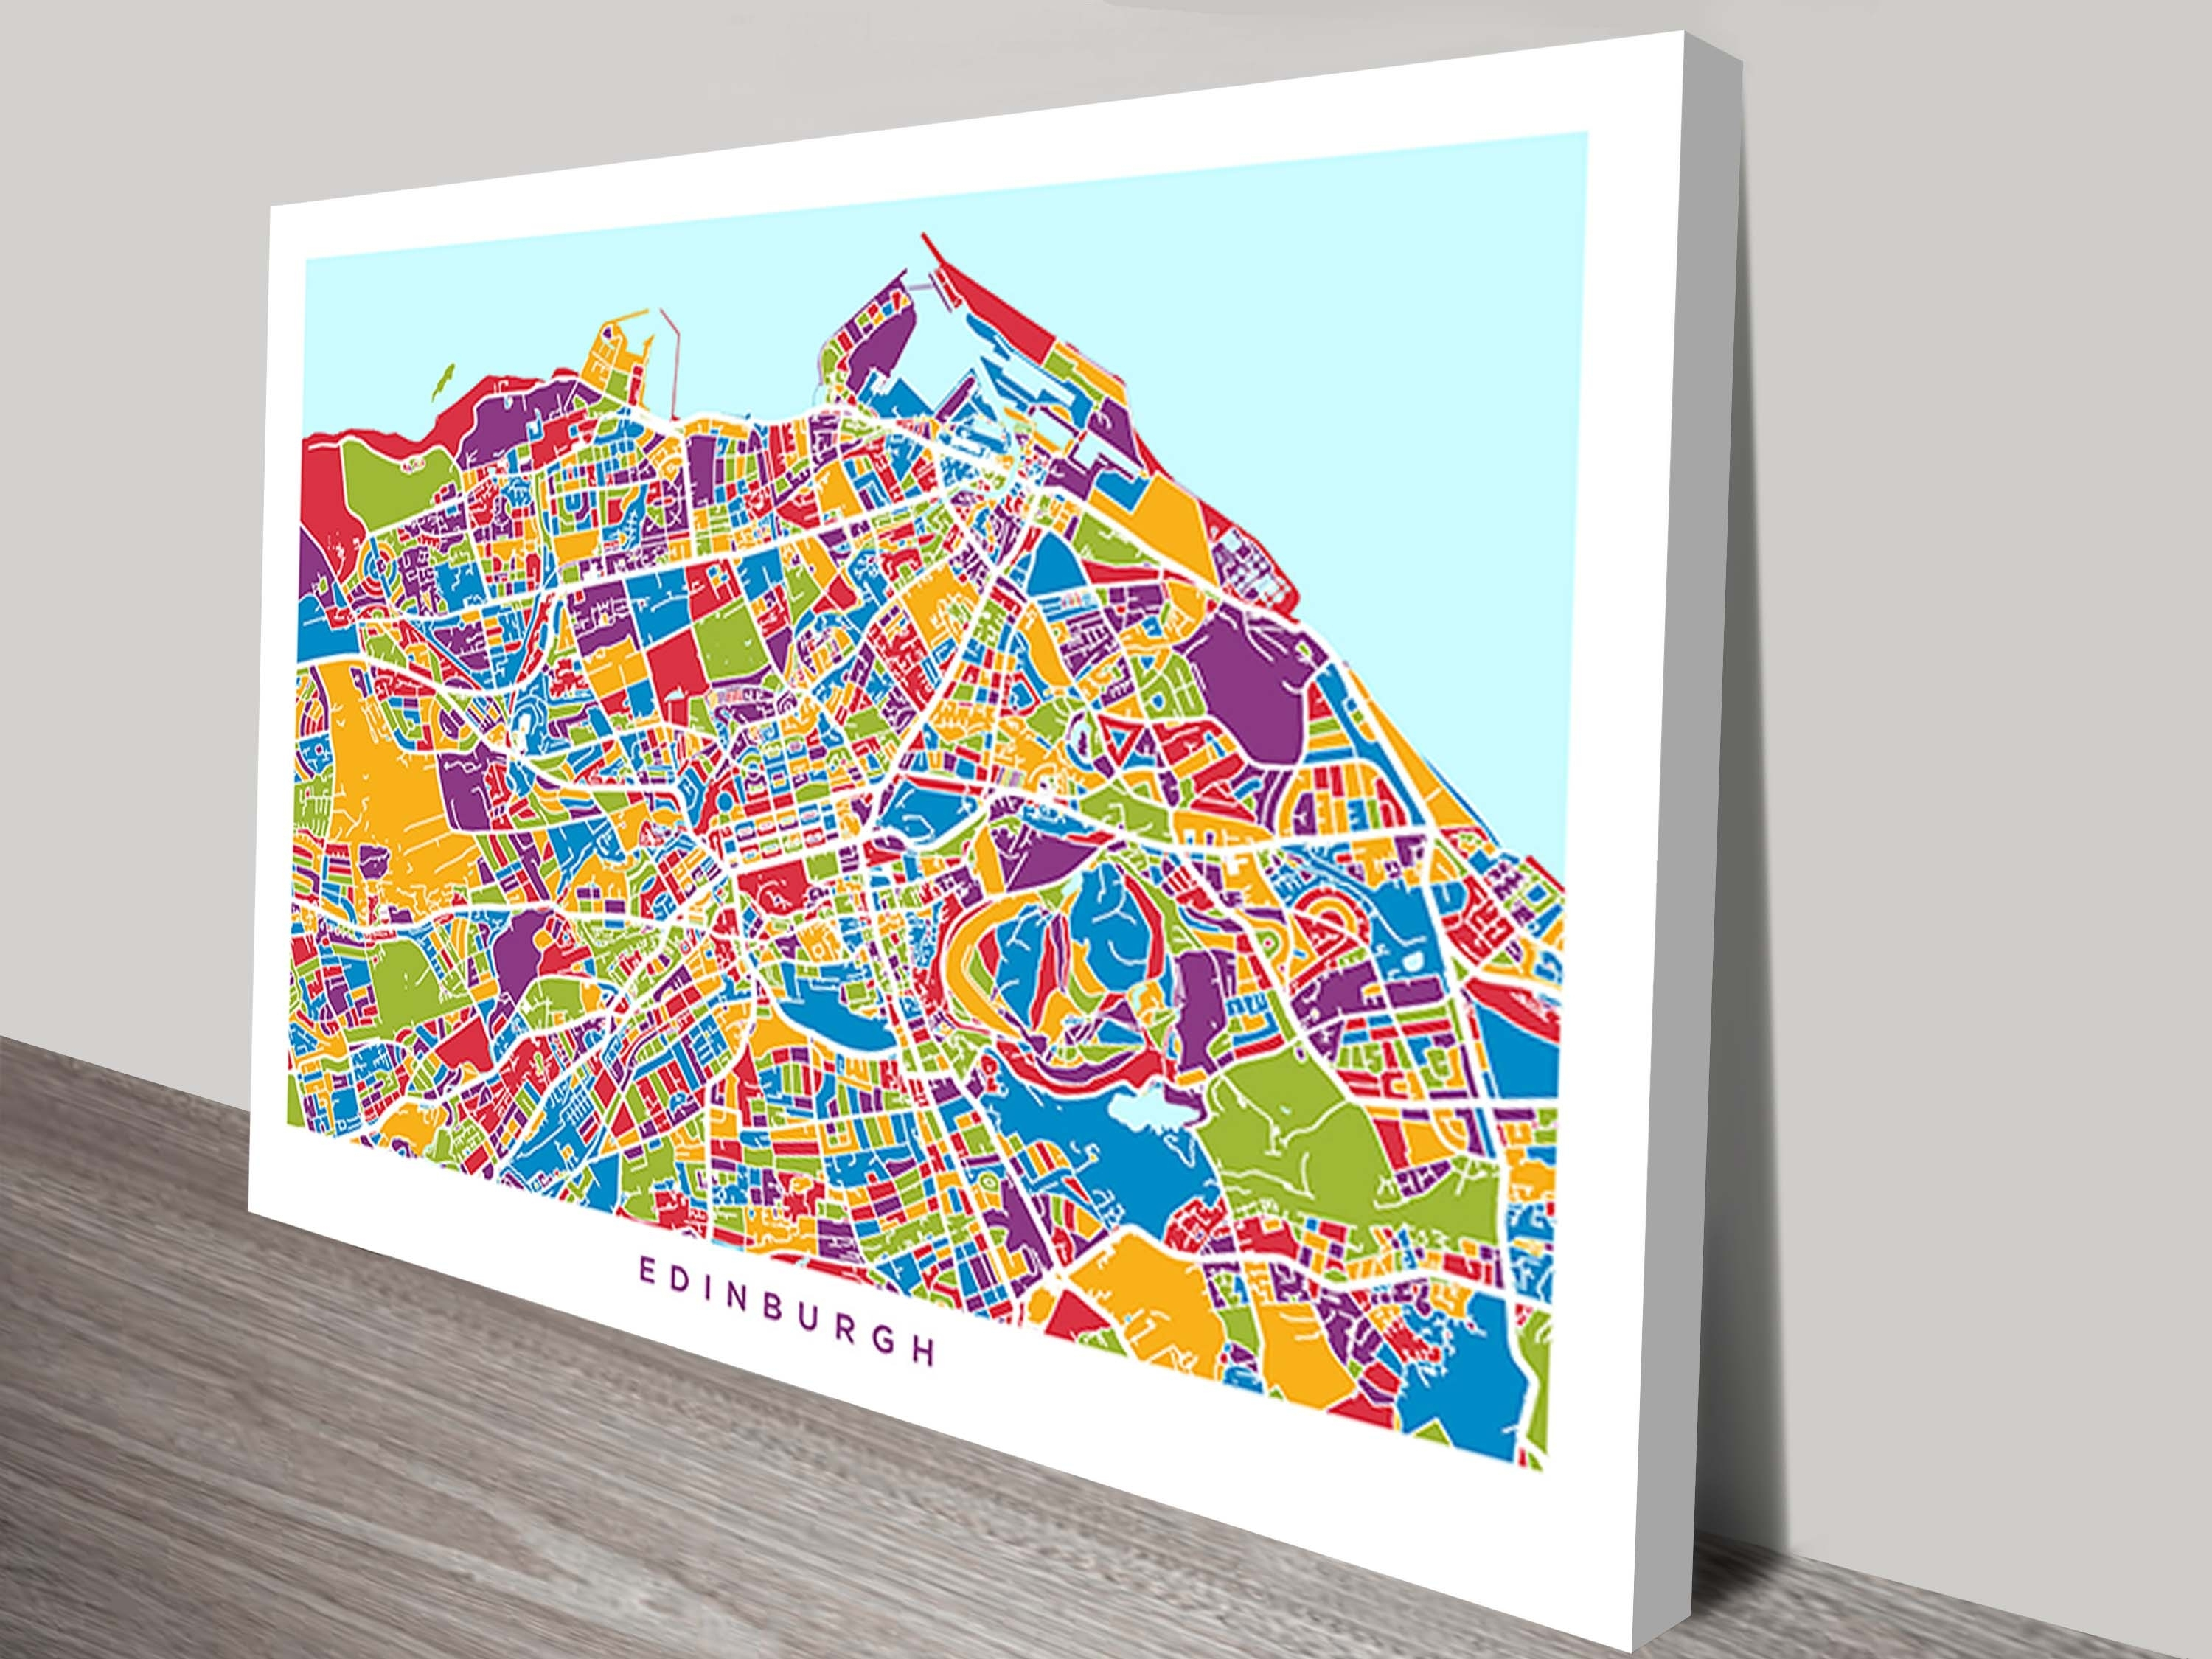 Edinburgh, Scotland Street Map Canvas Artmichael Tompsett Intended For Most Recent Edinburgh Canvas Prints Wall Art (View 11 of 15)